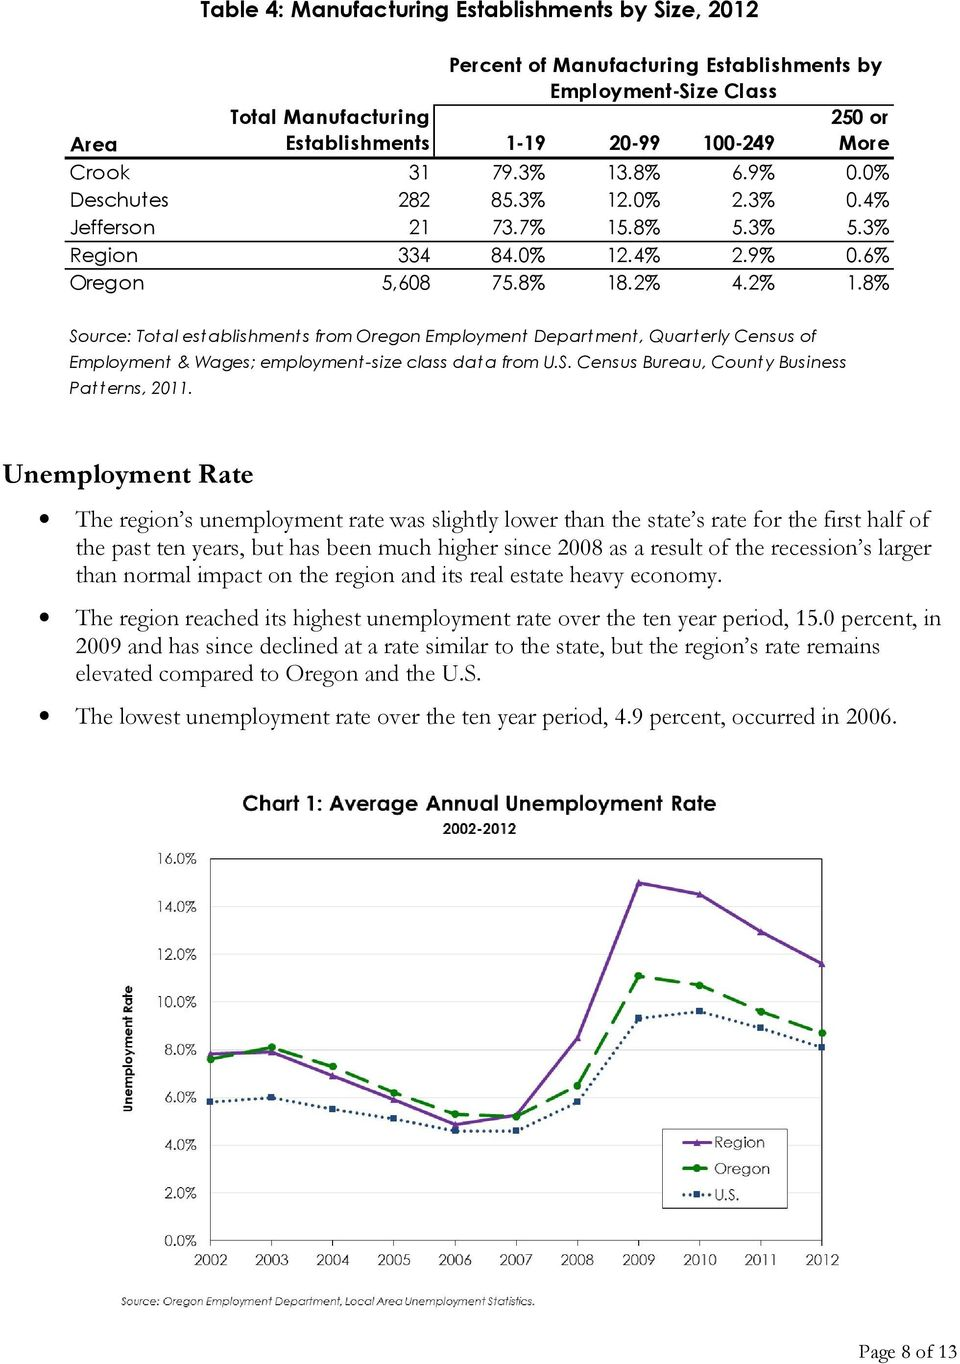 8% Source: Total establishments from Oregon Department, Quarterly Census of & Wages; employment-size class data from U.S. Census Bureau, County Business Pat terns, 2011.